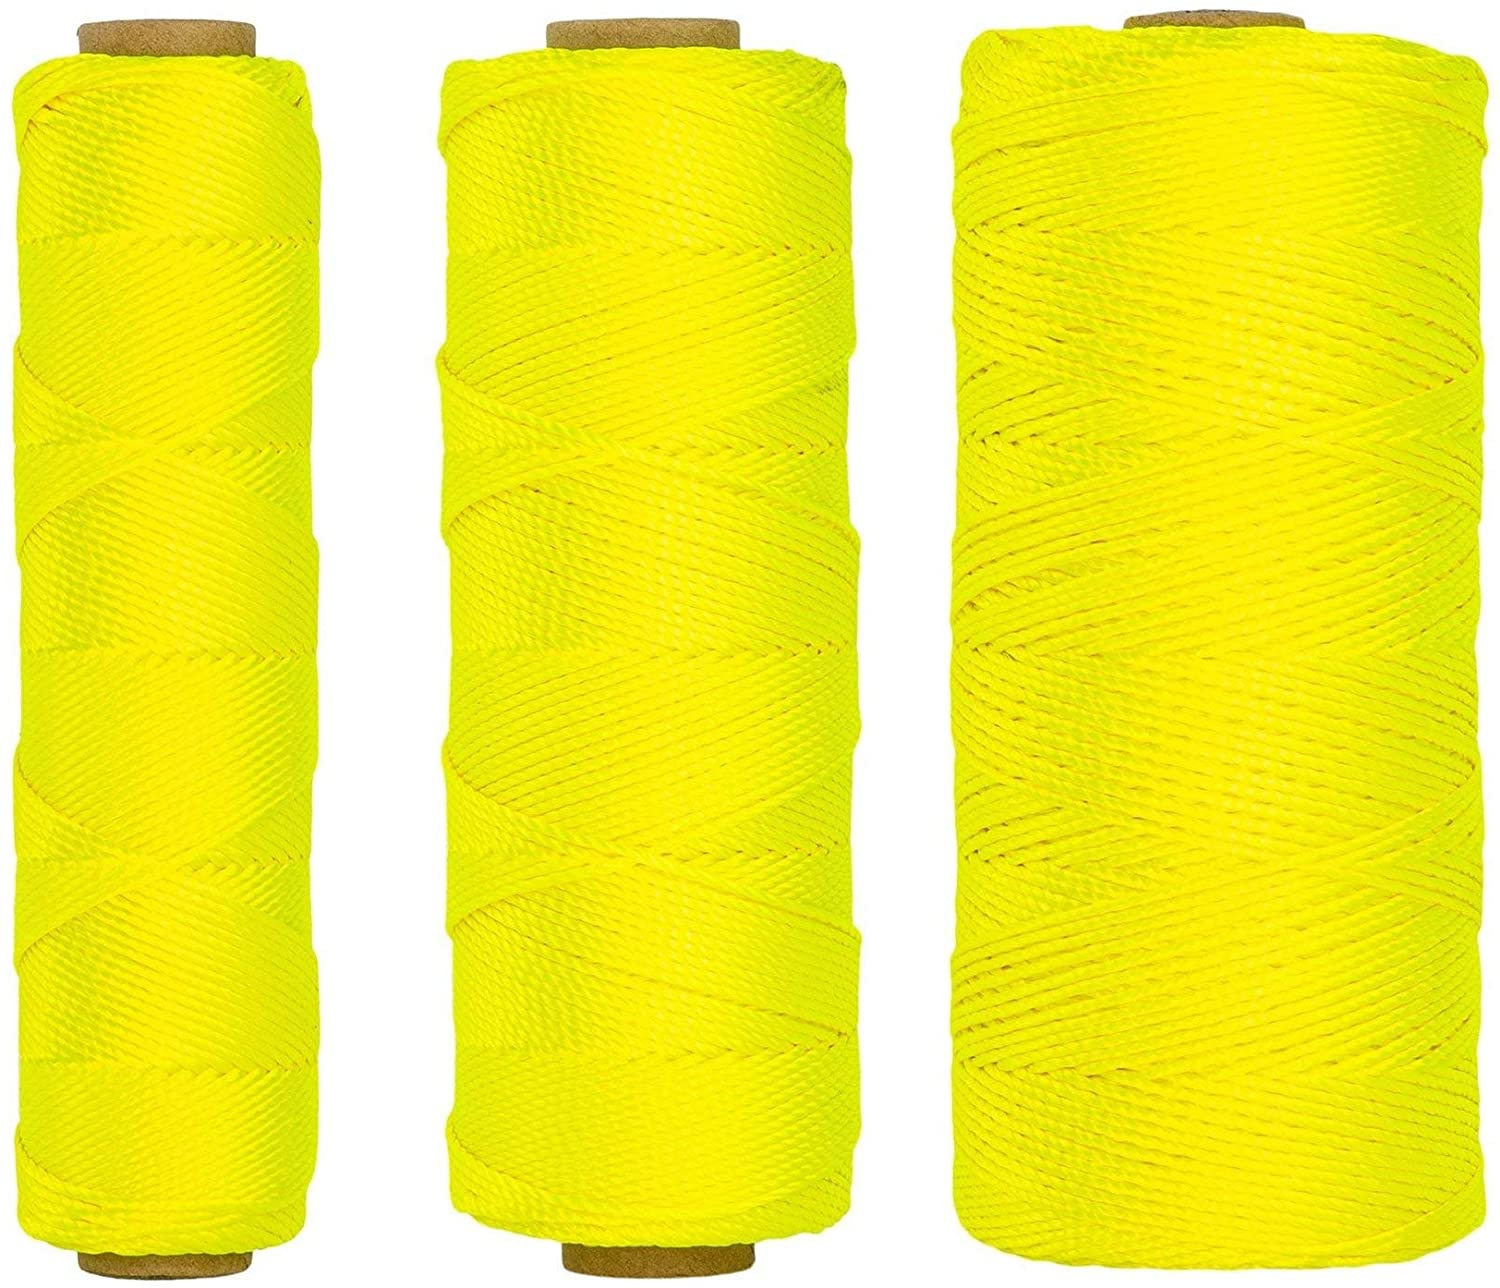 SGT KNOTS #18 Twisted Mason Line - Nylon Masonry String, DIY Projects, Crafting, Commercial, Gardening (24Case, 1100ft, White)